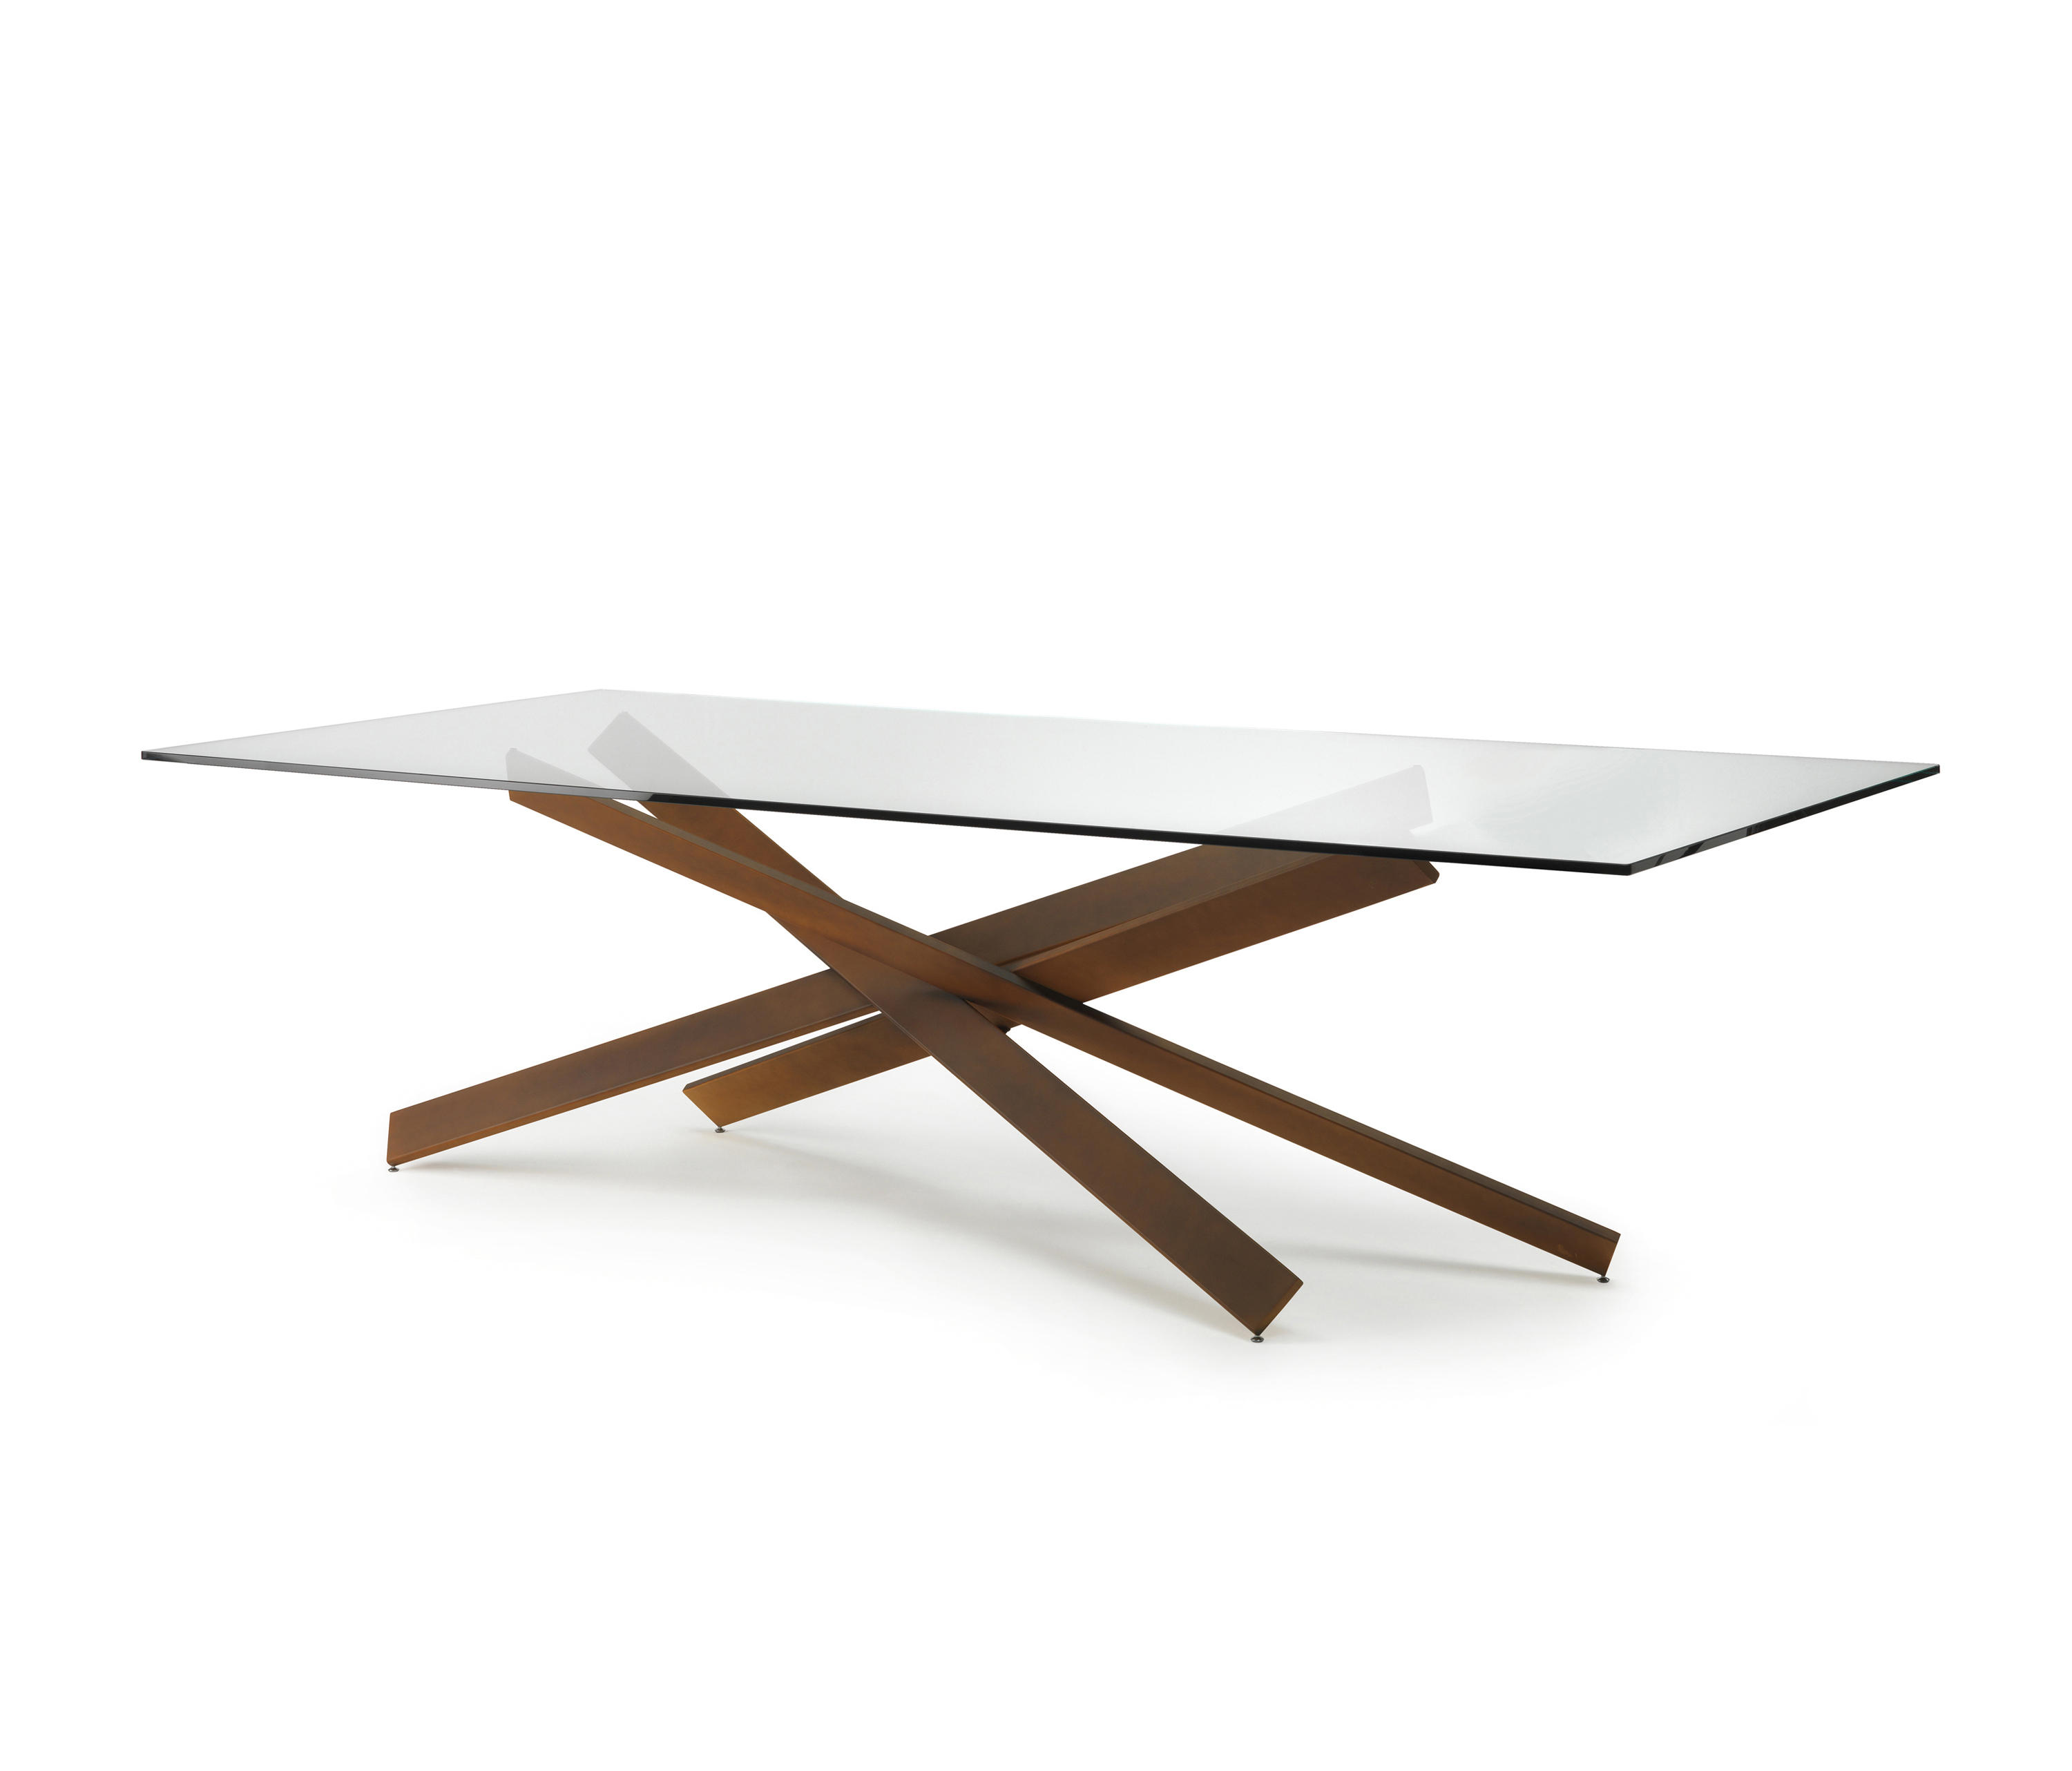 Mikado 72 Dining Tables From Reflex Architonic